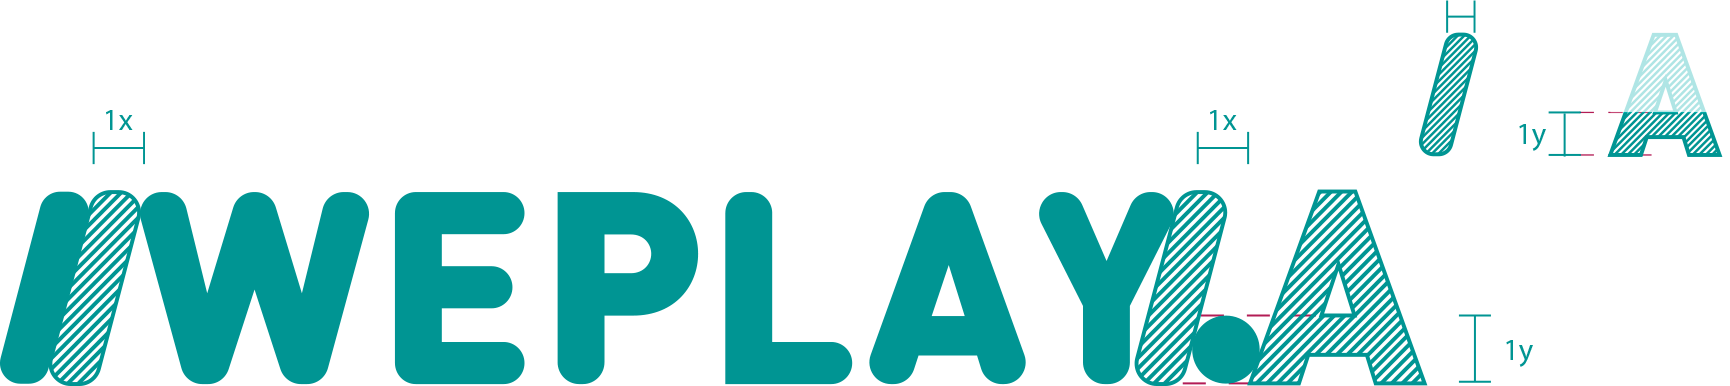 /WEPLAY. Dale play a tus redes: logo construction